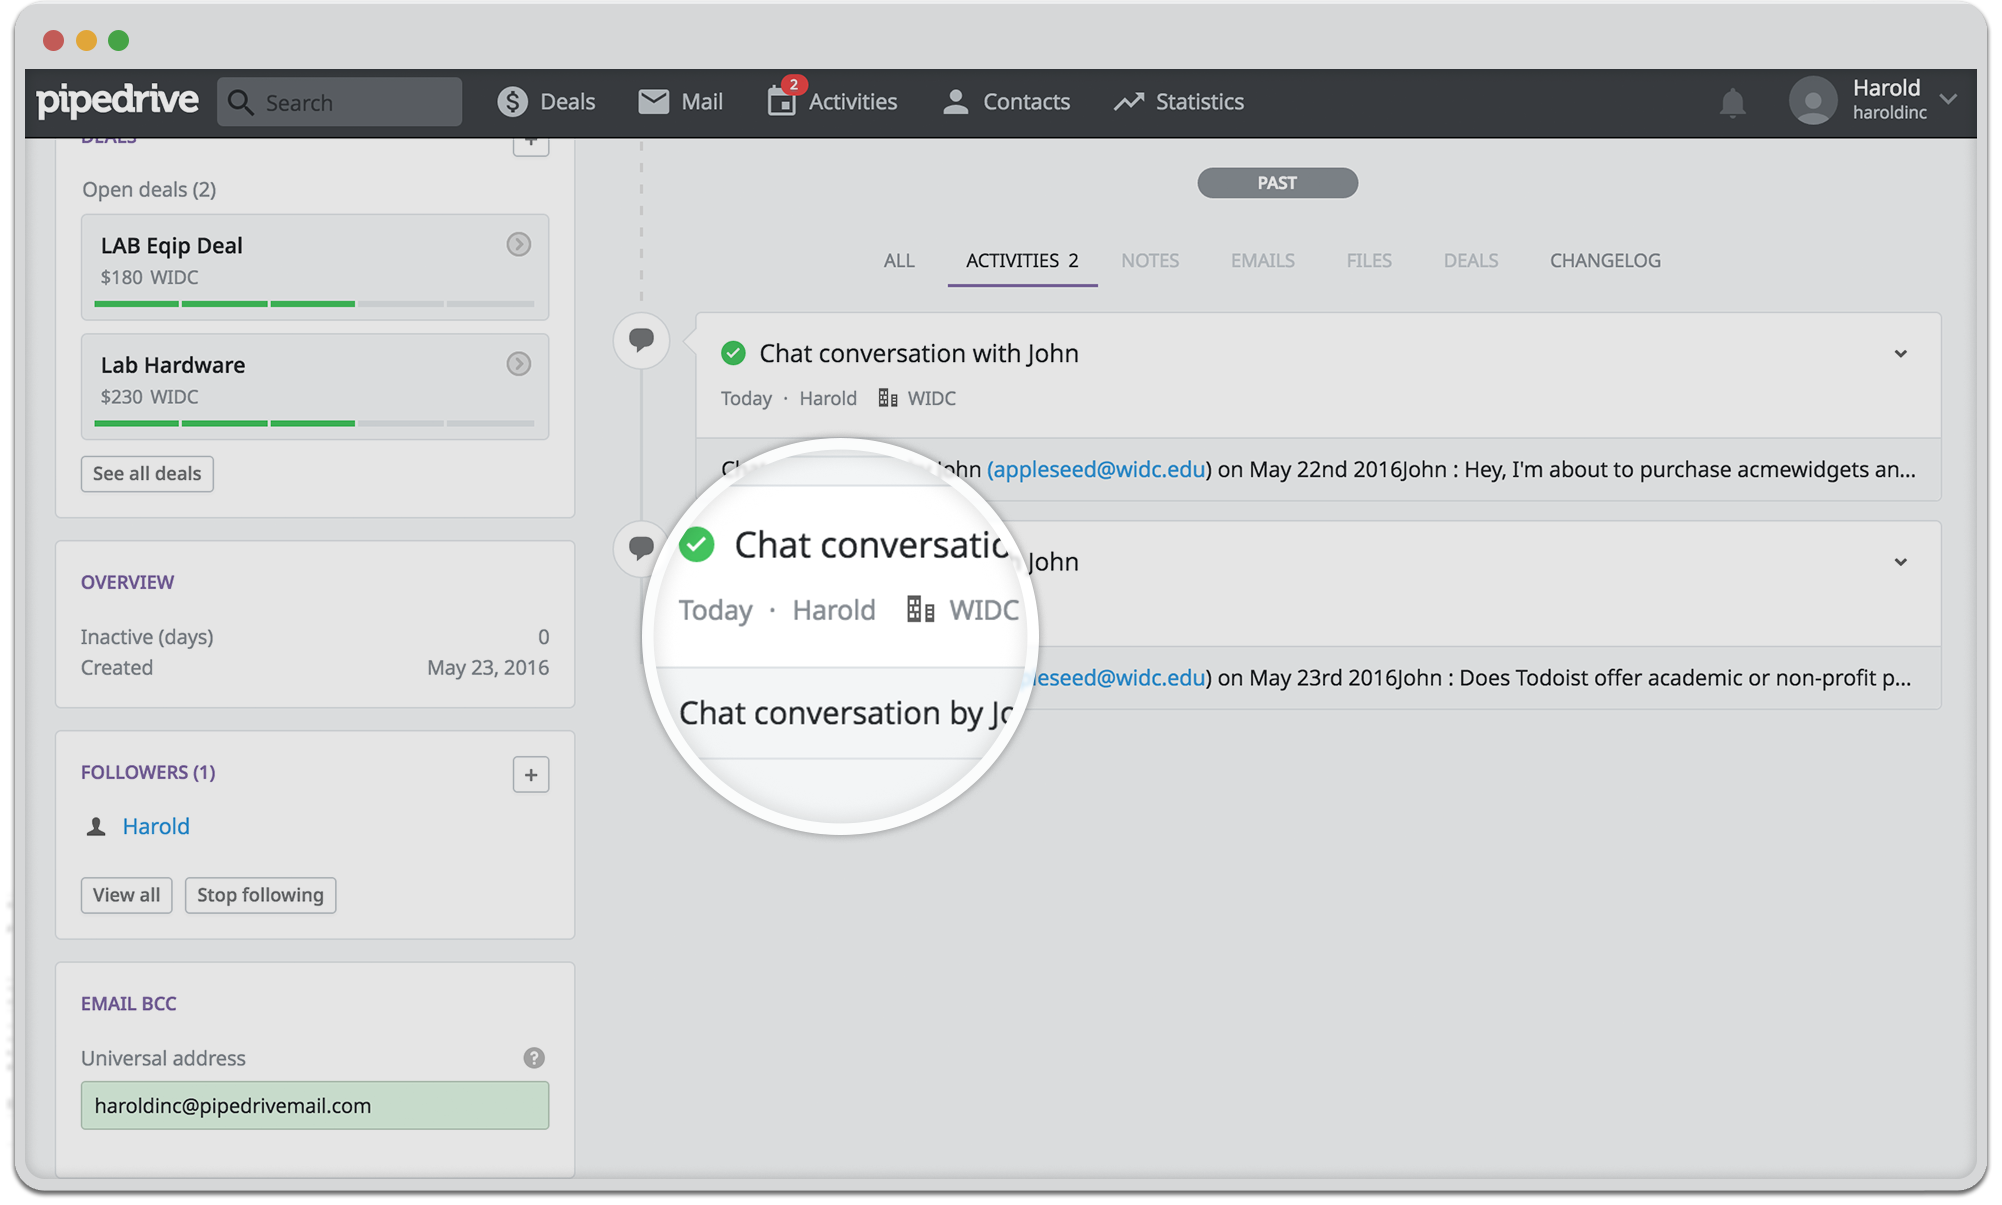 Live chats as Pipedrive activity